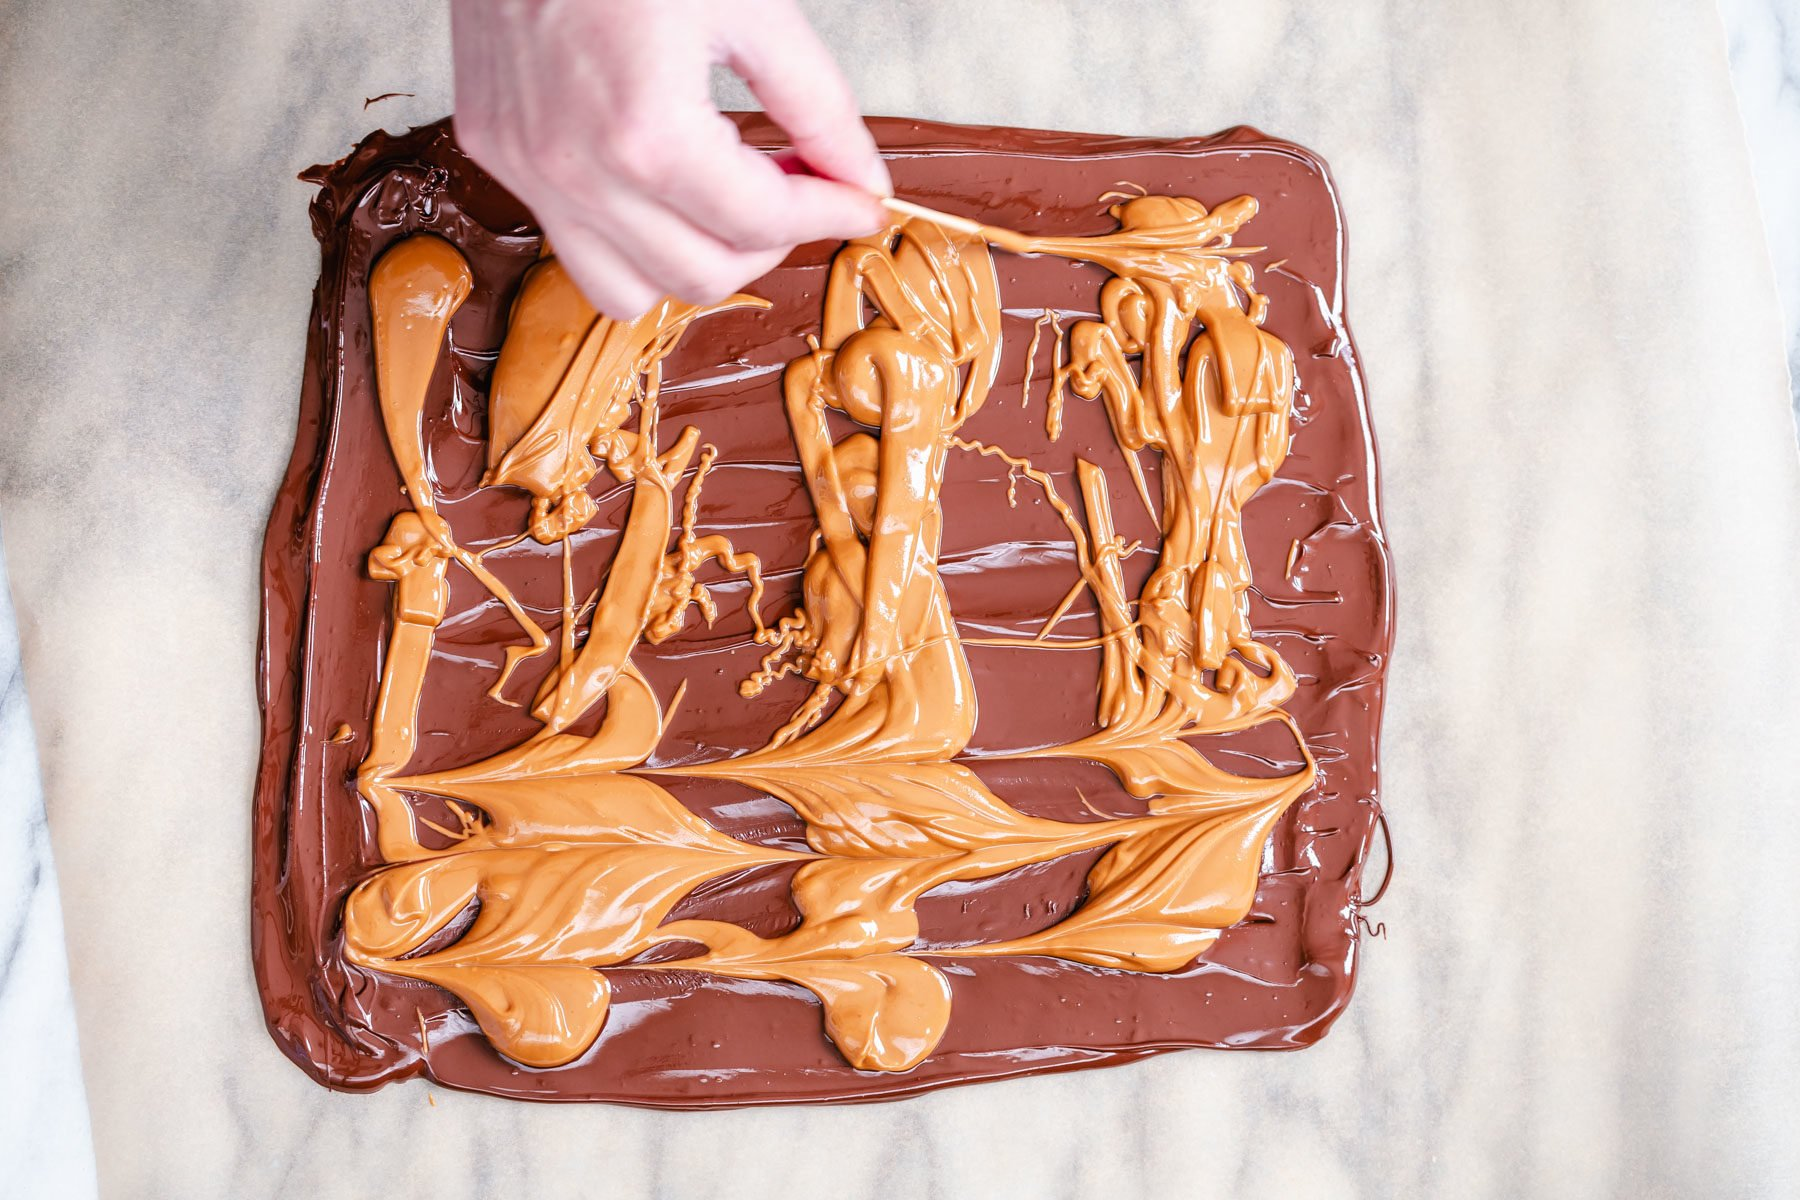 melted peanut butter being swirled into a rectangle of melted chocolate to make chocolate bark